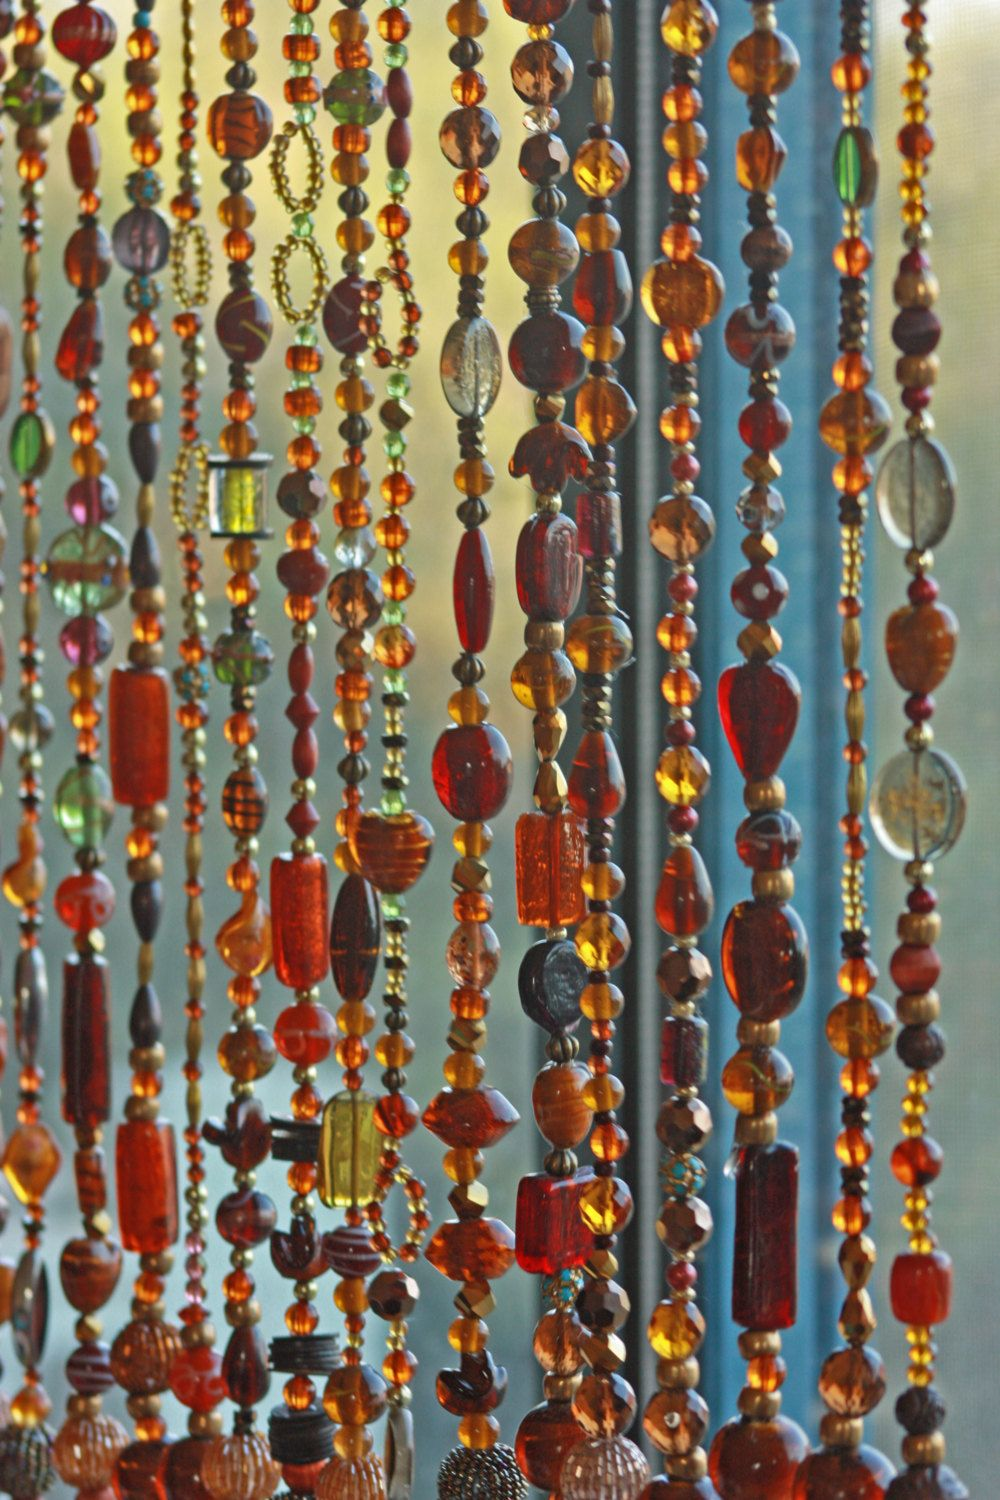 Beaded Curtain-Glass Beaded Suncatcher- Window Curtain-Beaded Door Curtain- Hanging Door Beads-Beaded Wall Hanging-Bohemian Wall Art-Wall Art